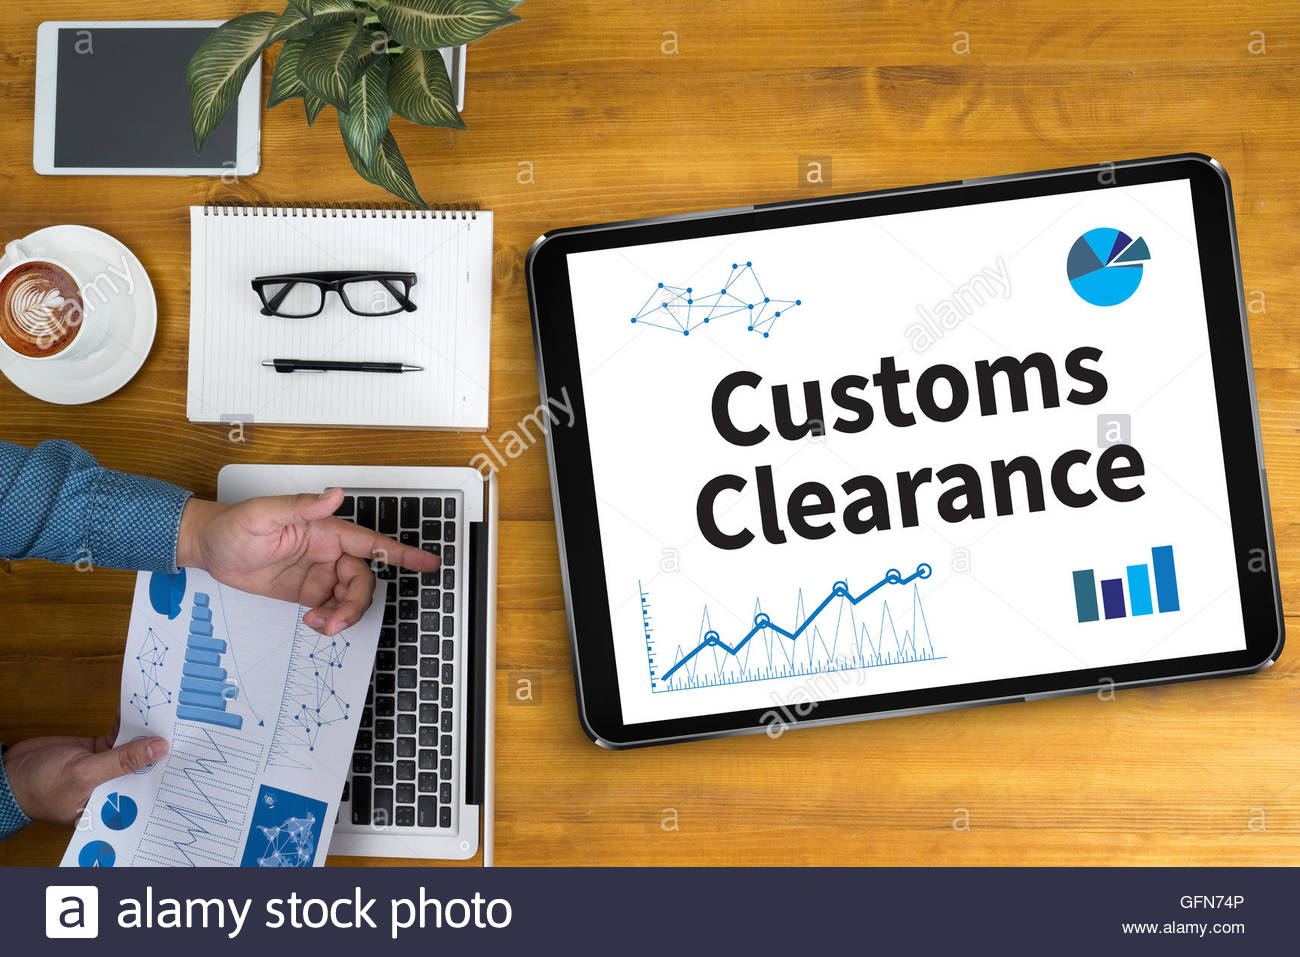 pni logistics customs clearance advisory consulting